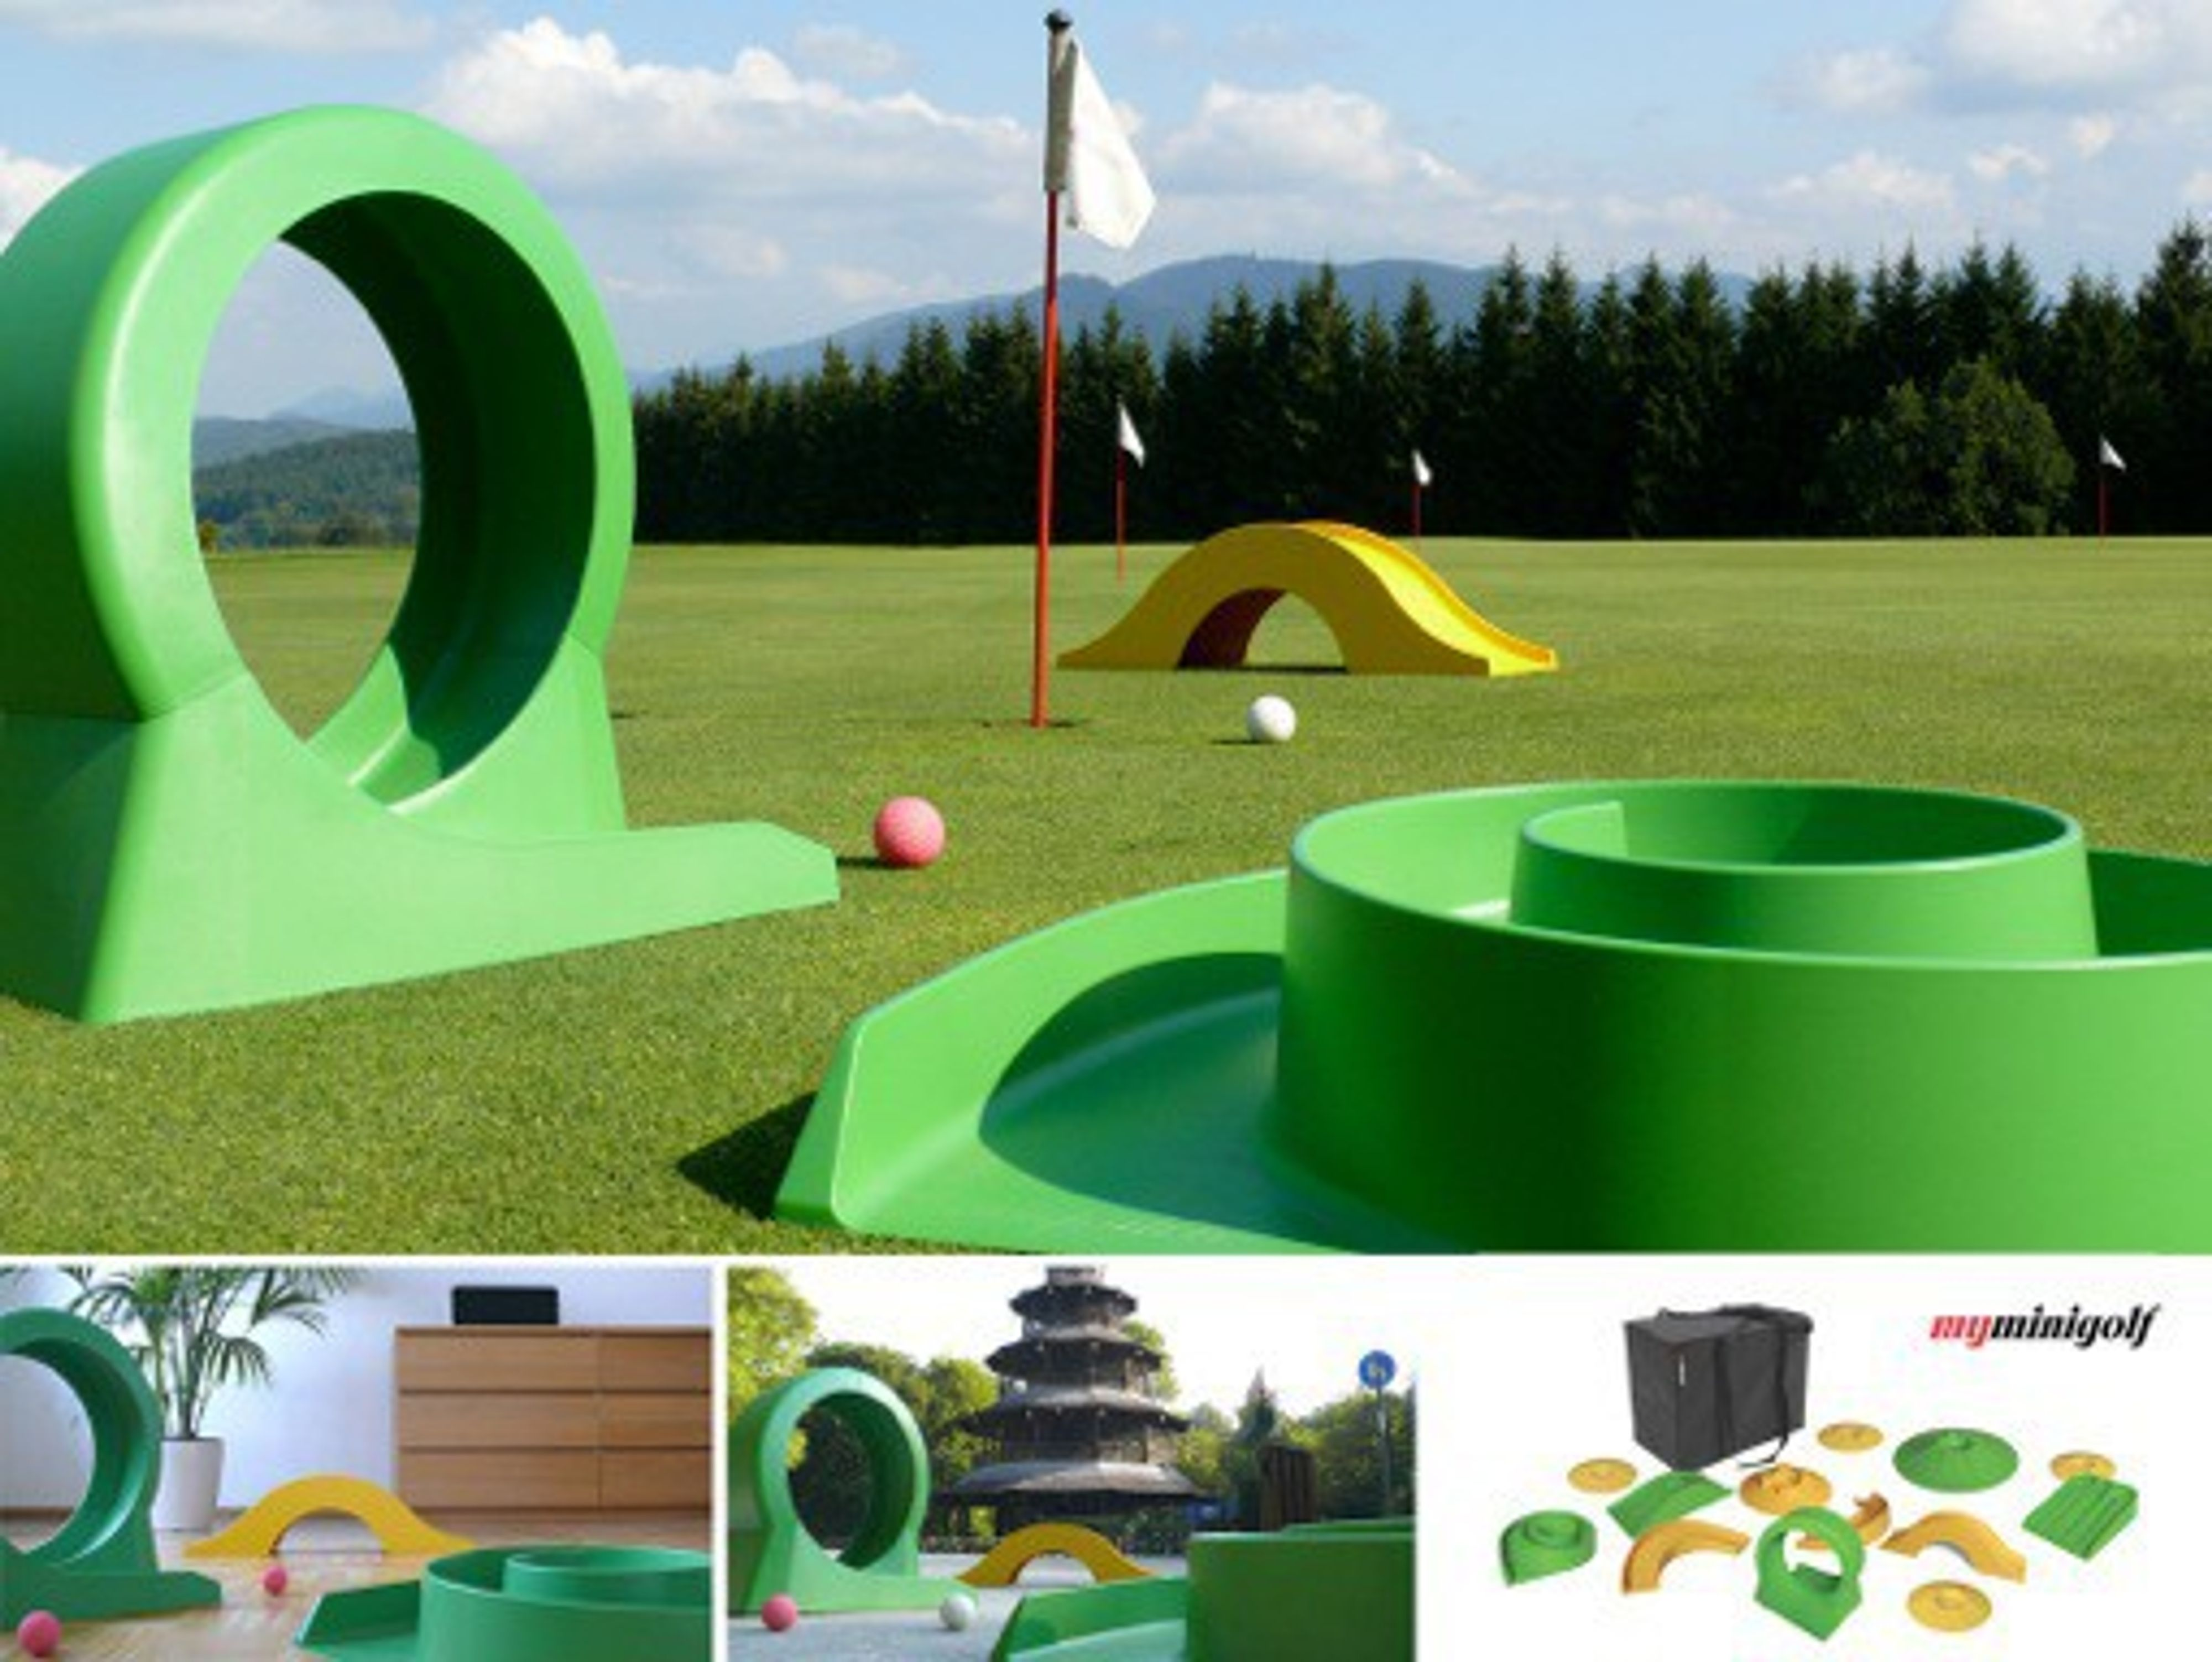 myminigolf to go komplett set basic minigolf to go f r innen und au en minigolf set. Black Bedroom Furniture Sets. Home Design Ideas